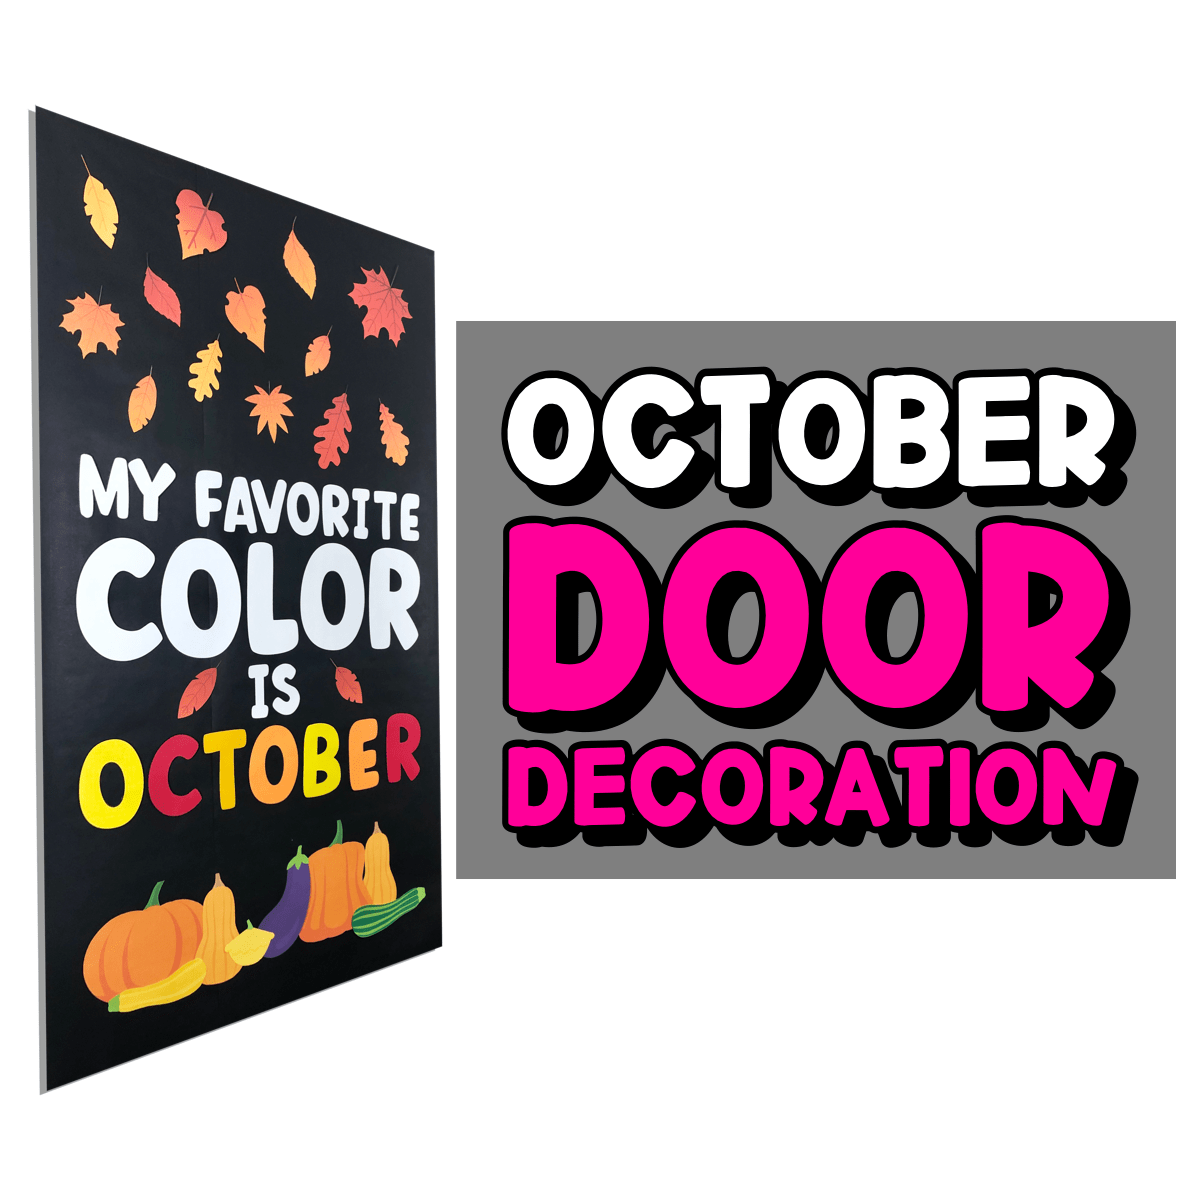 October Door Decor